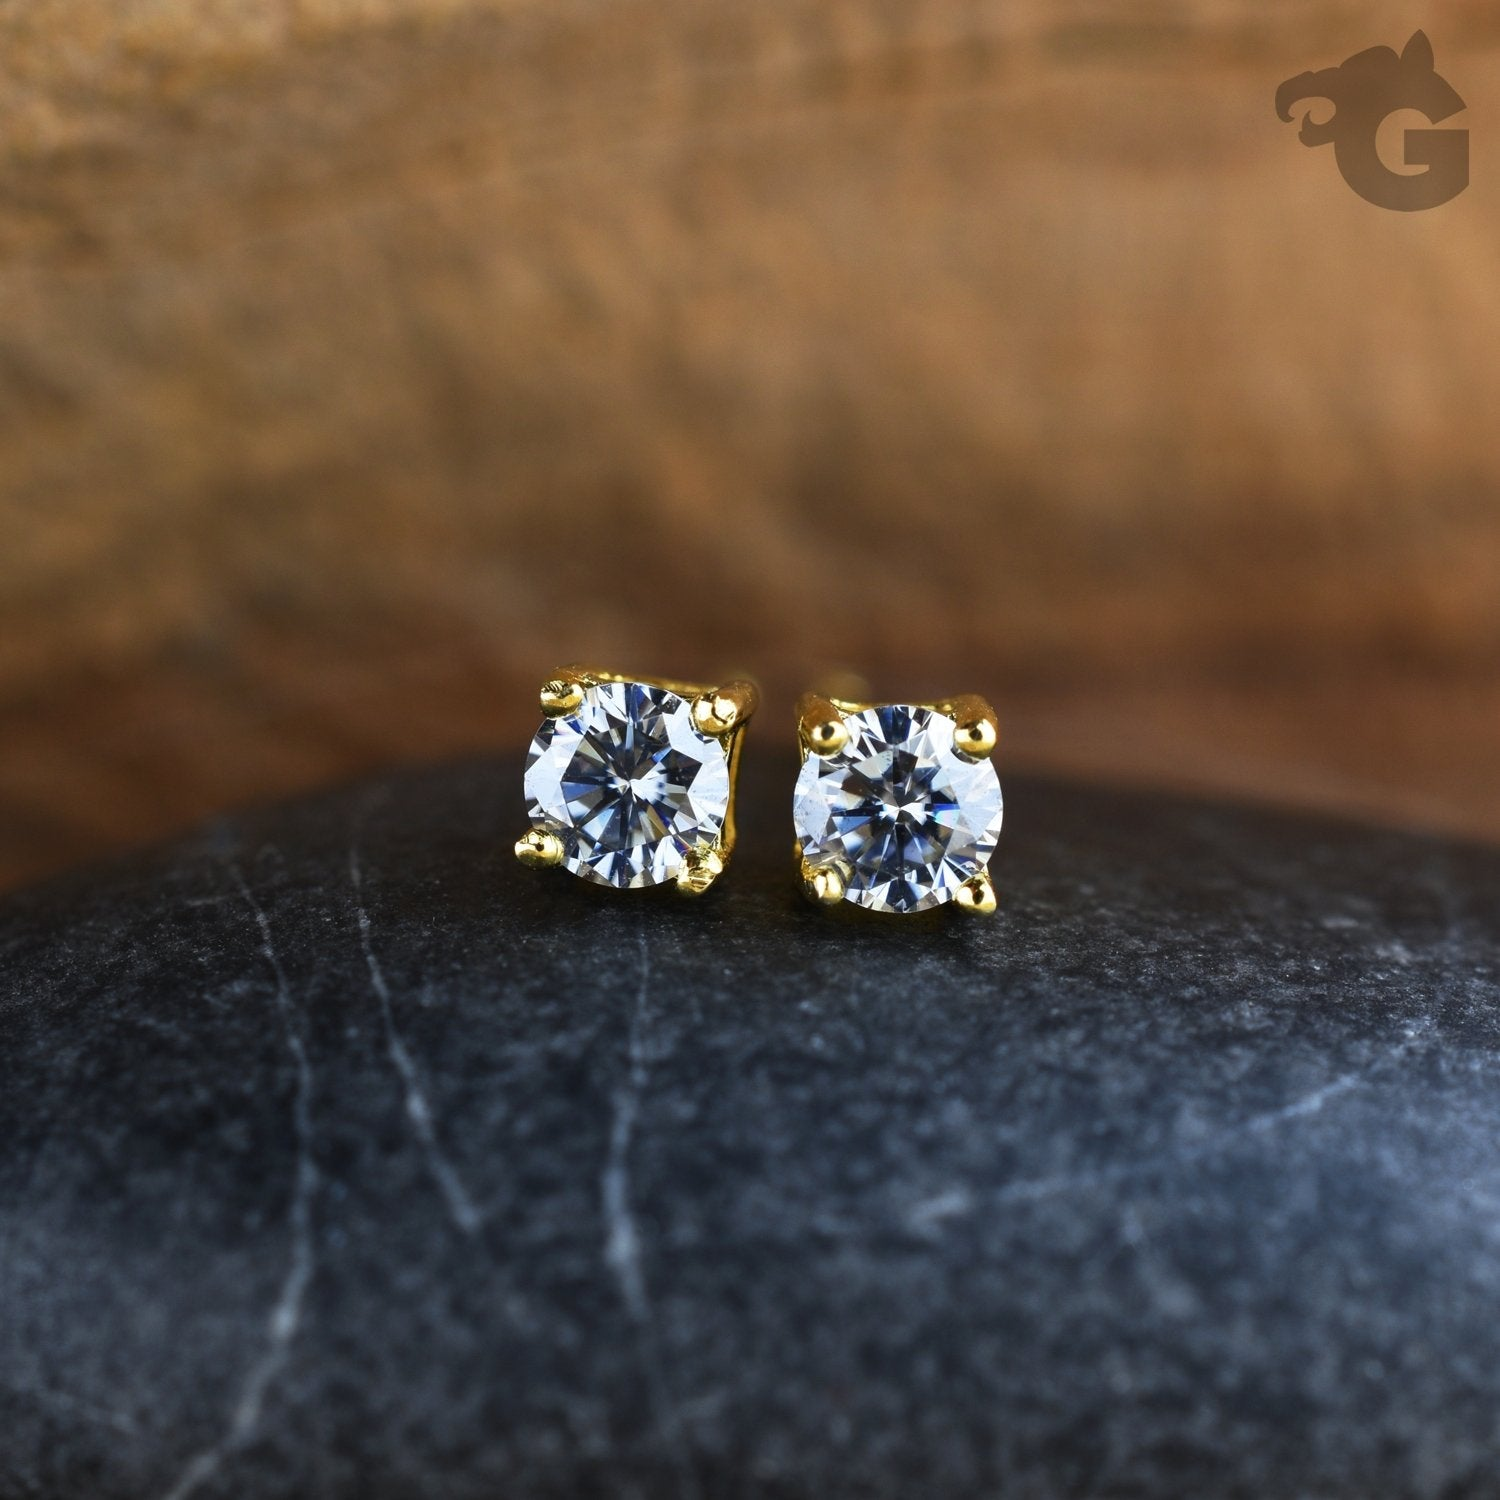 Moissanite stud earrings yellow gold grey 3mm - Glermes.com